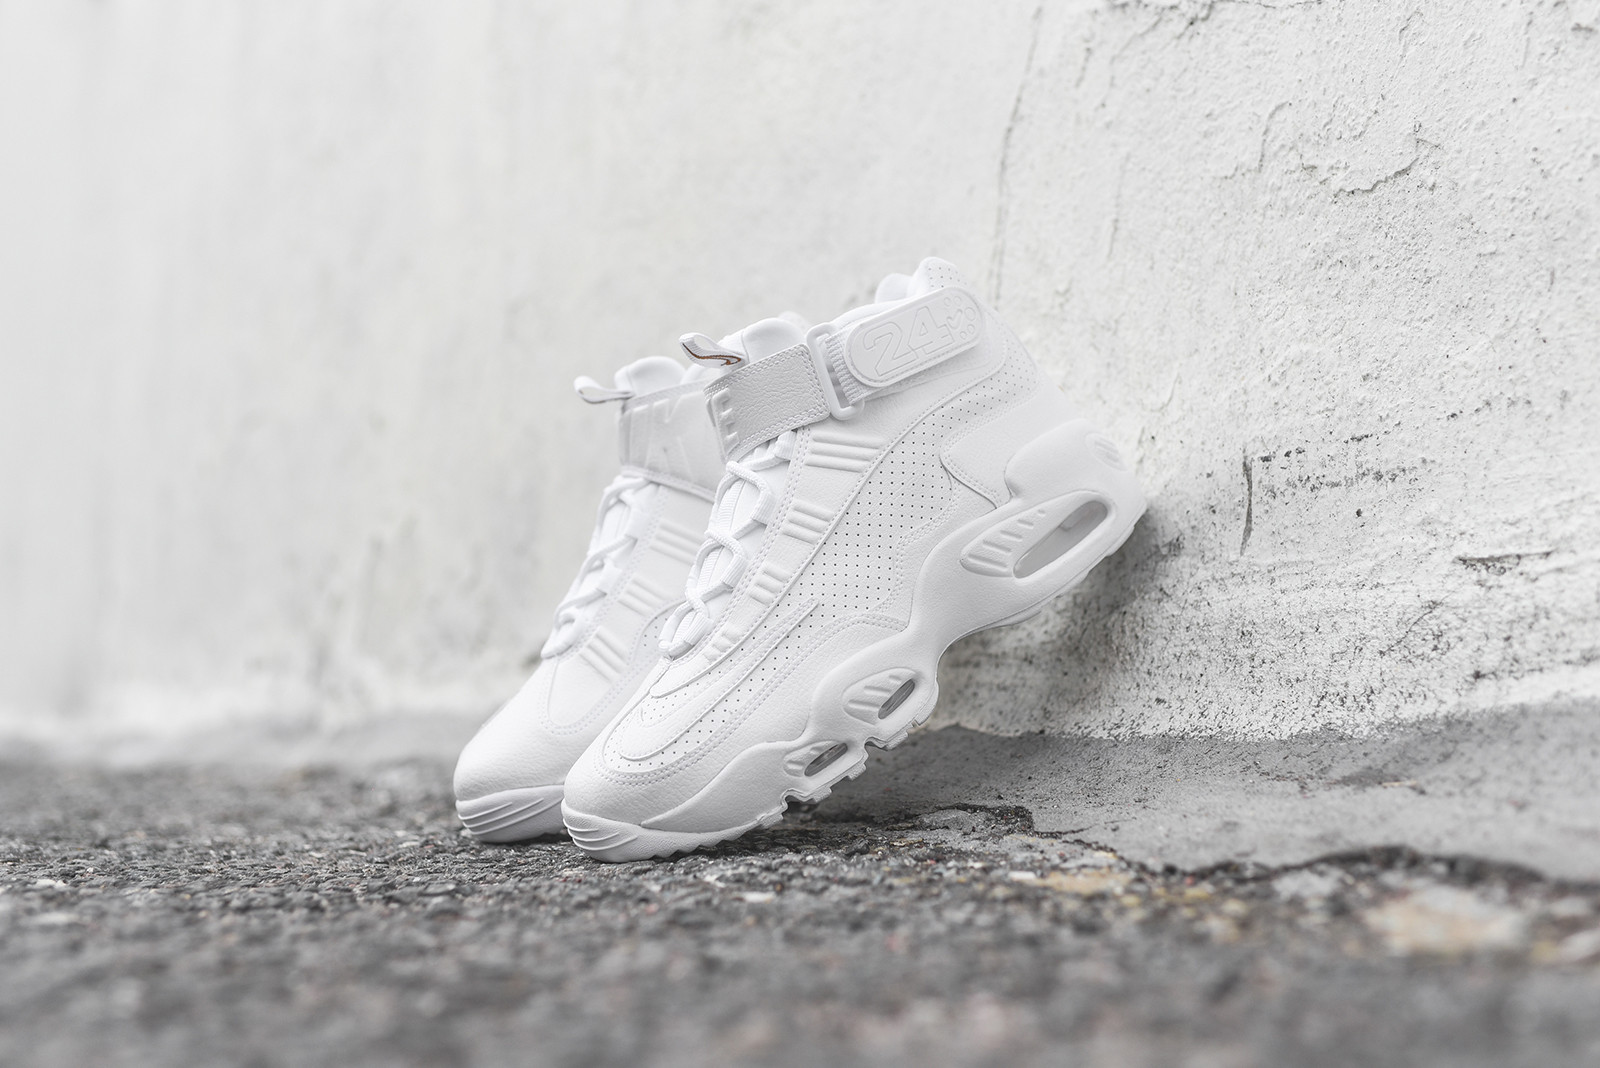 Nike Air Griffey Max 1 InductKid